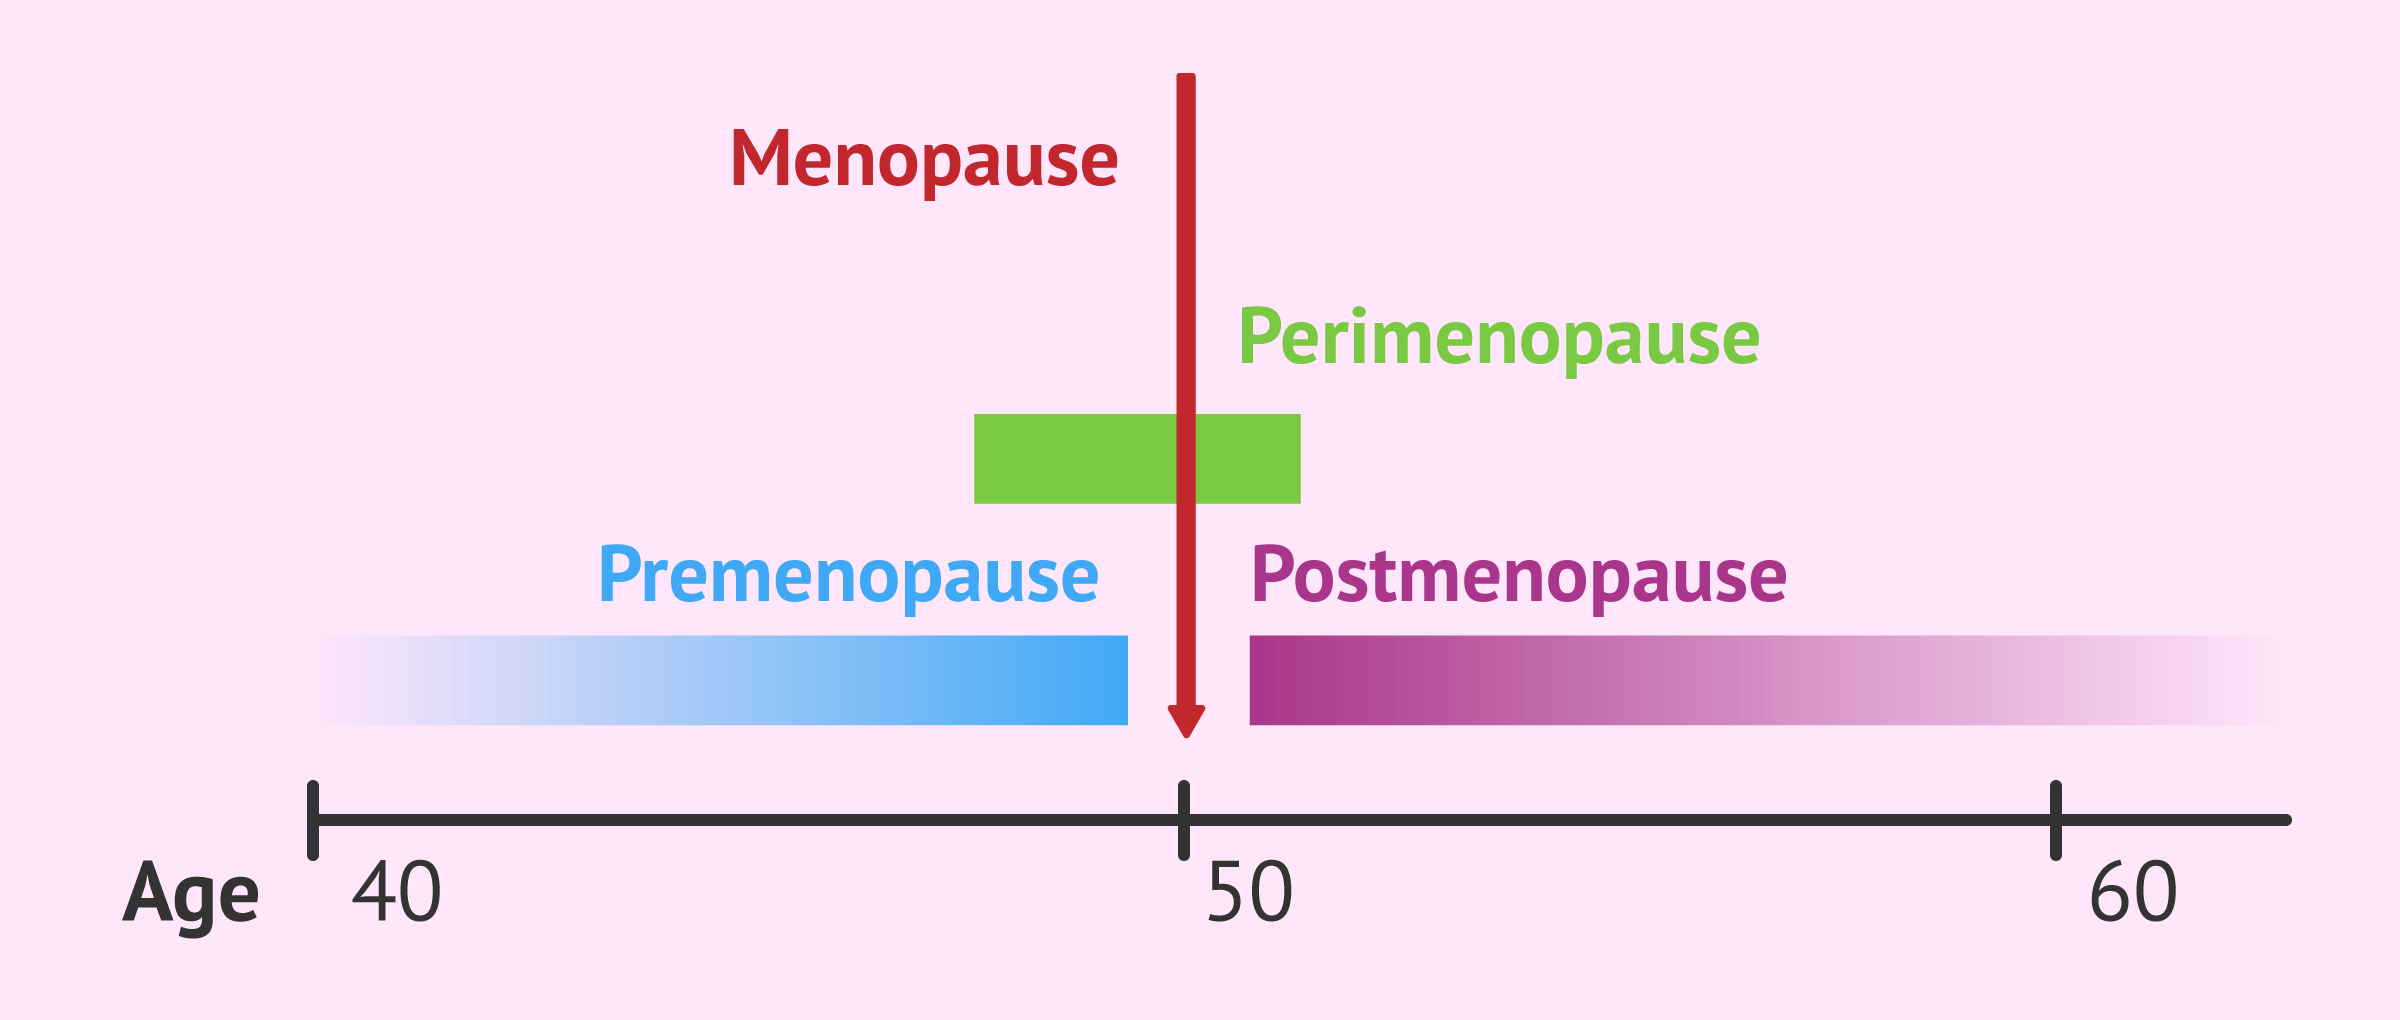 Difference between premenopause and perimenopause